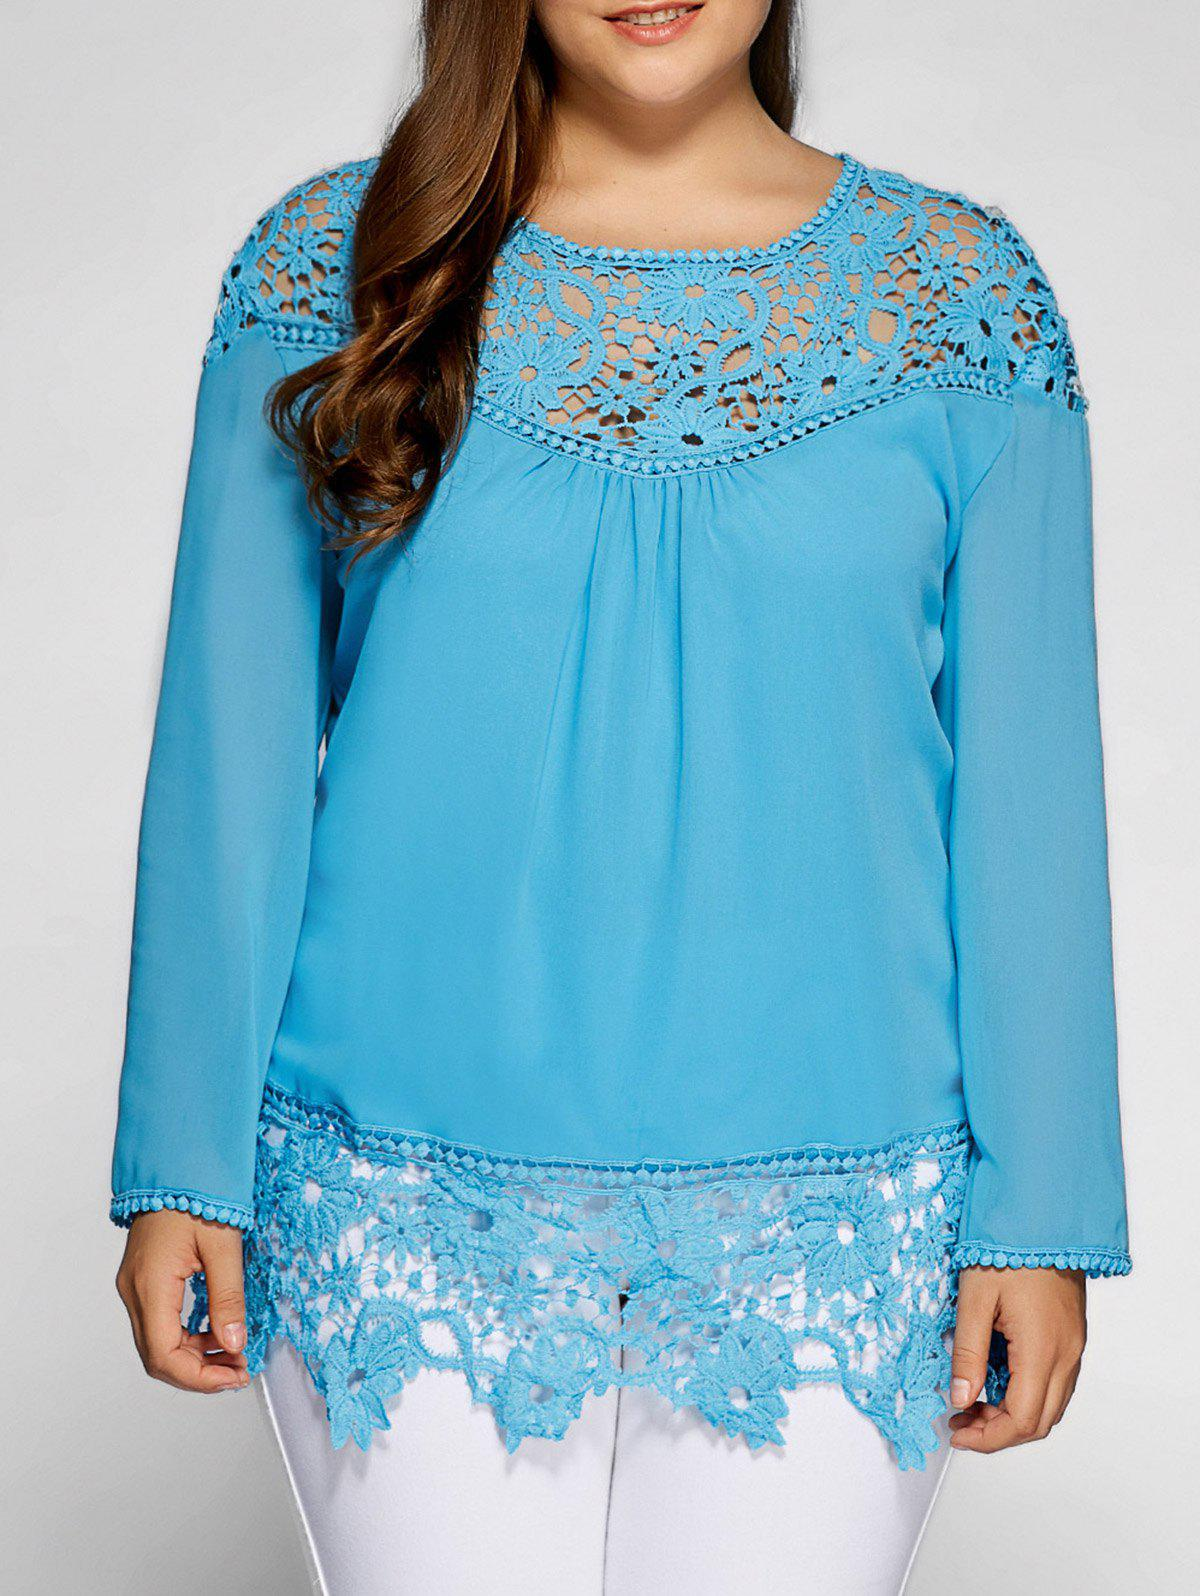 Lacework Splicing plus Blouse Taille